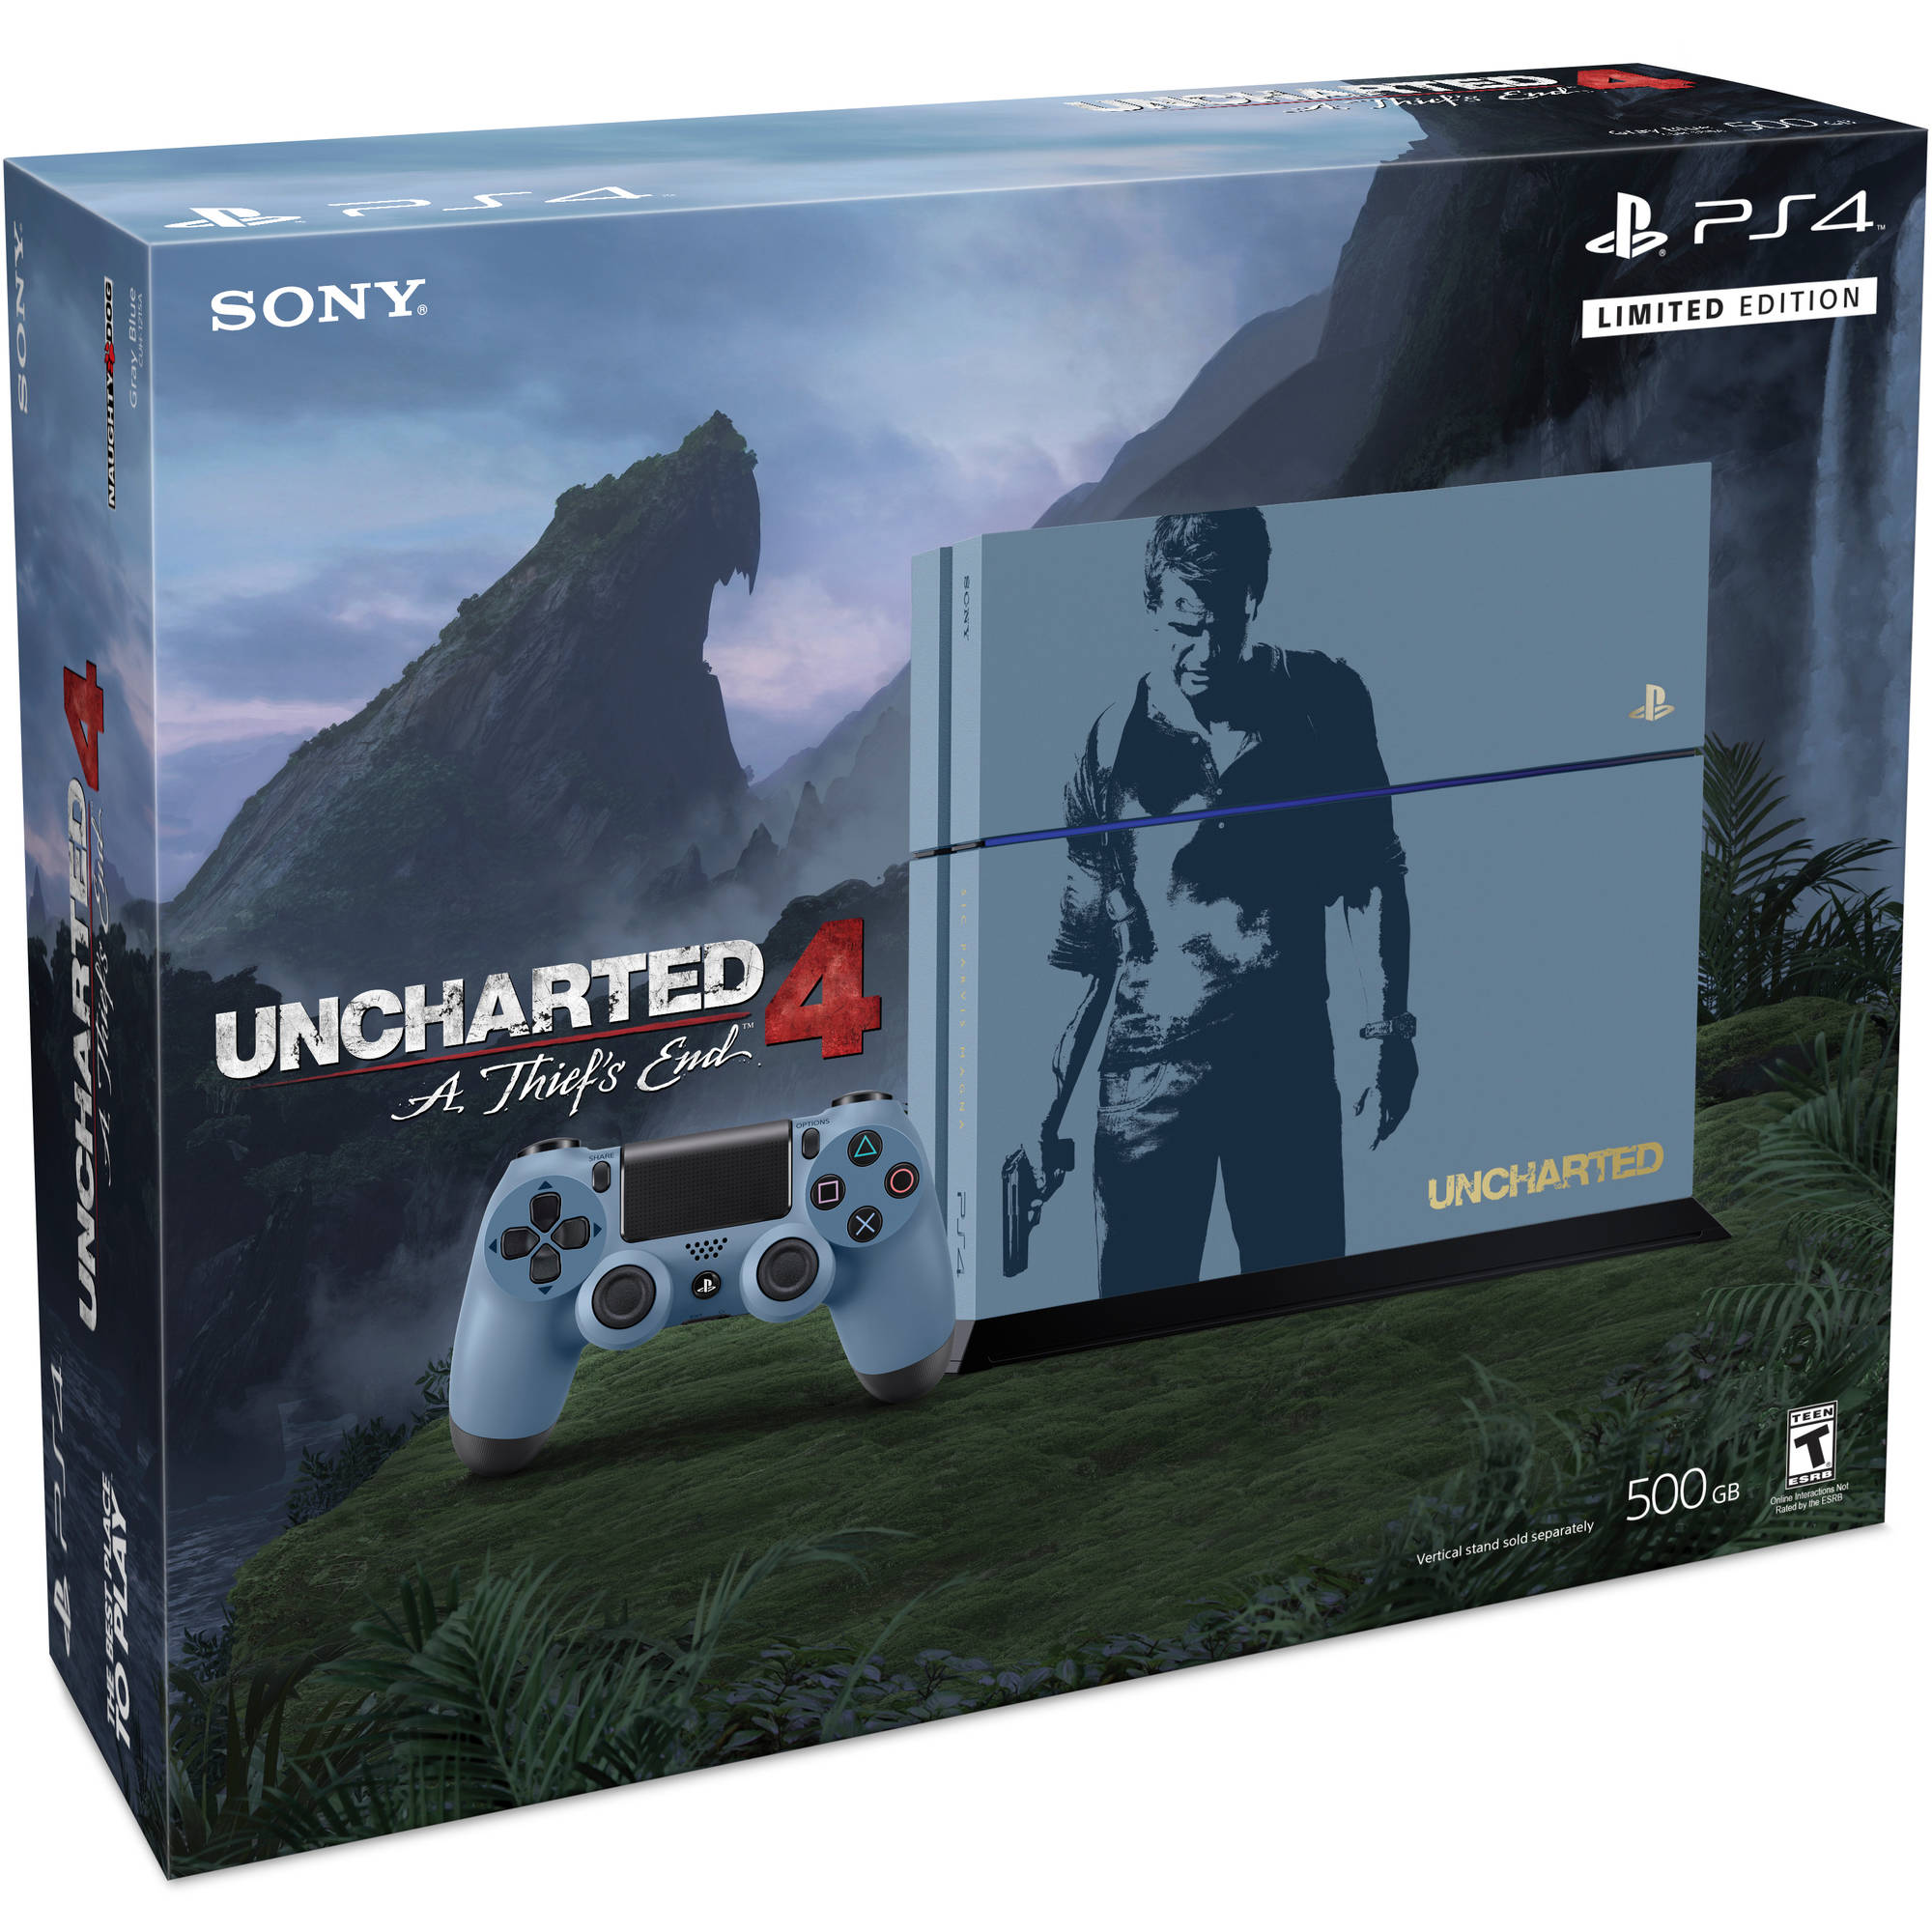 PlayStation 4 Limited Edition Uncharted 4 Console Bundle (PS4) - Walmart.com